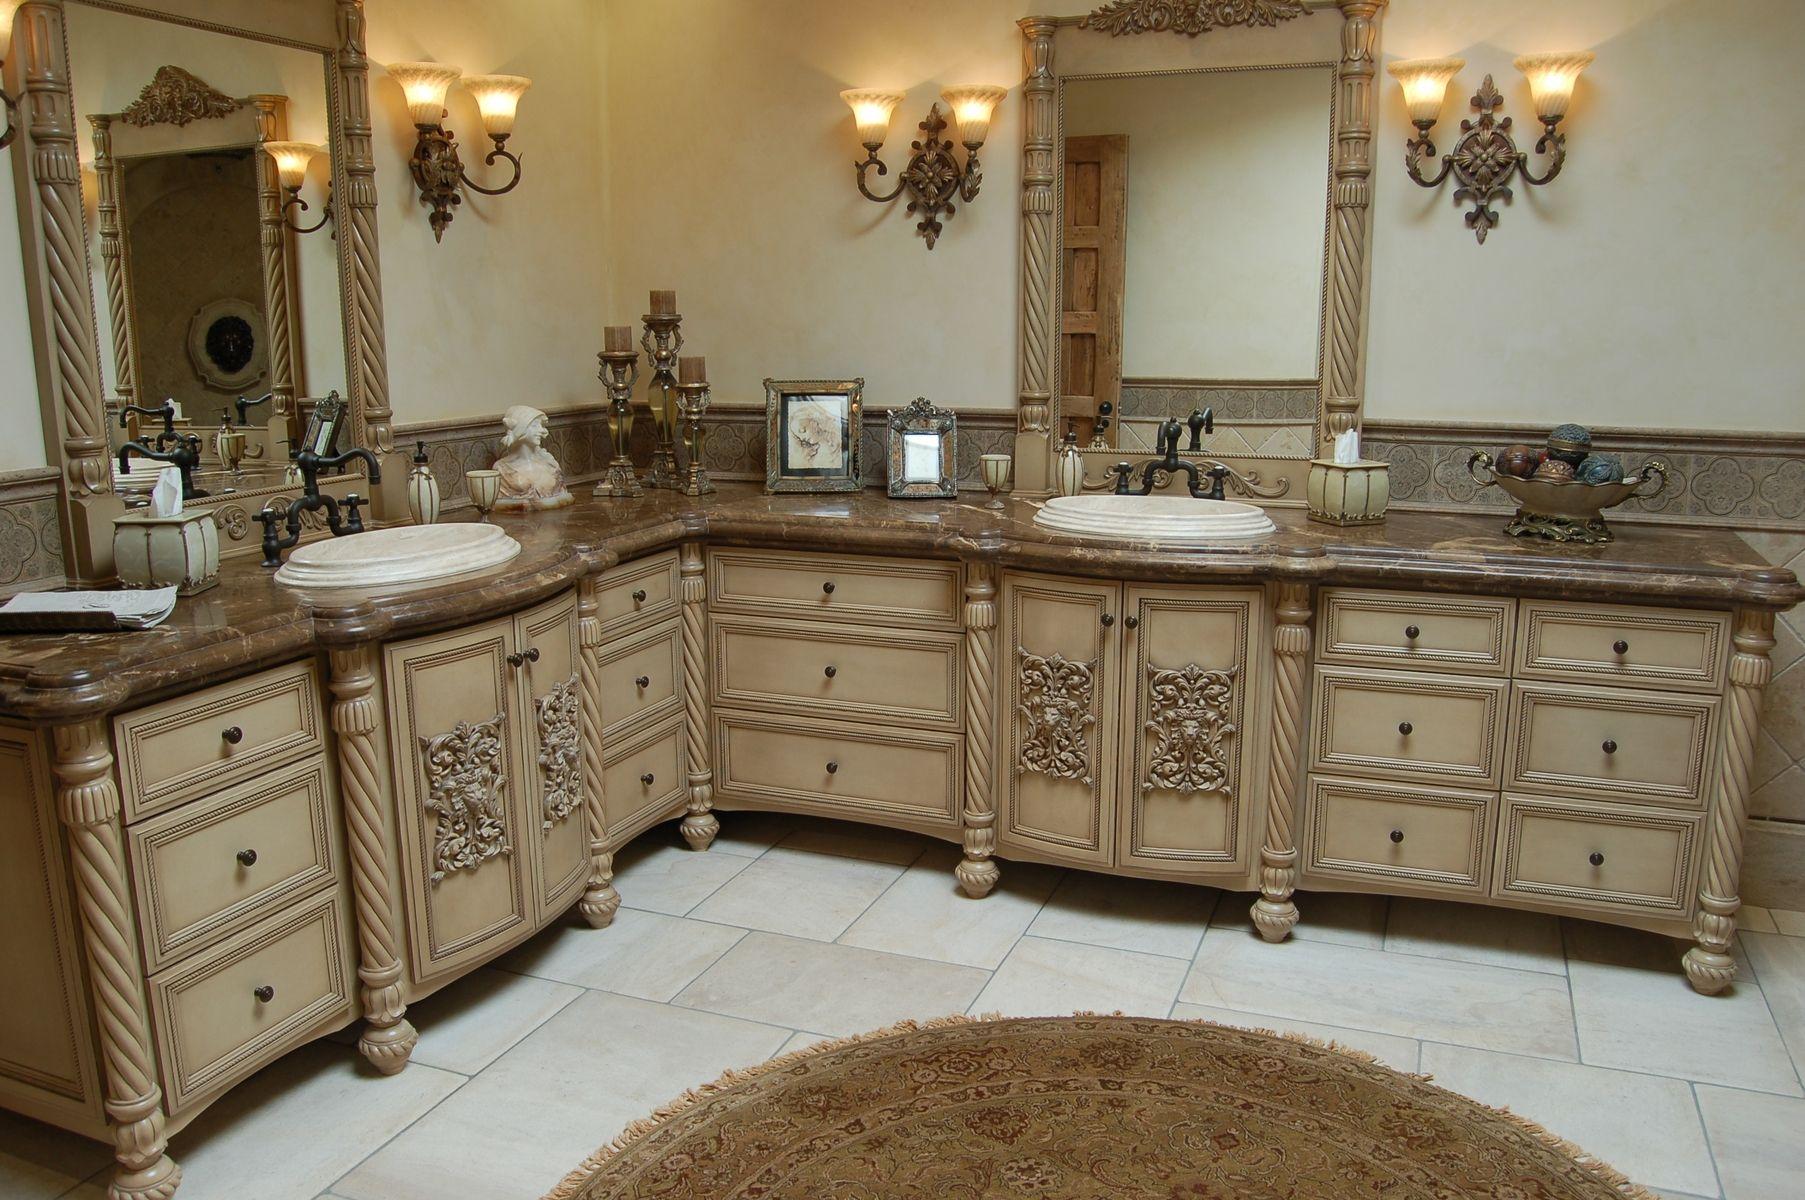 Handmade custom faux finish master bathroom cabinets by for Master bathroom cabinet designs